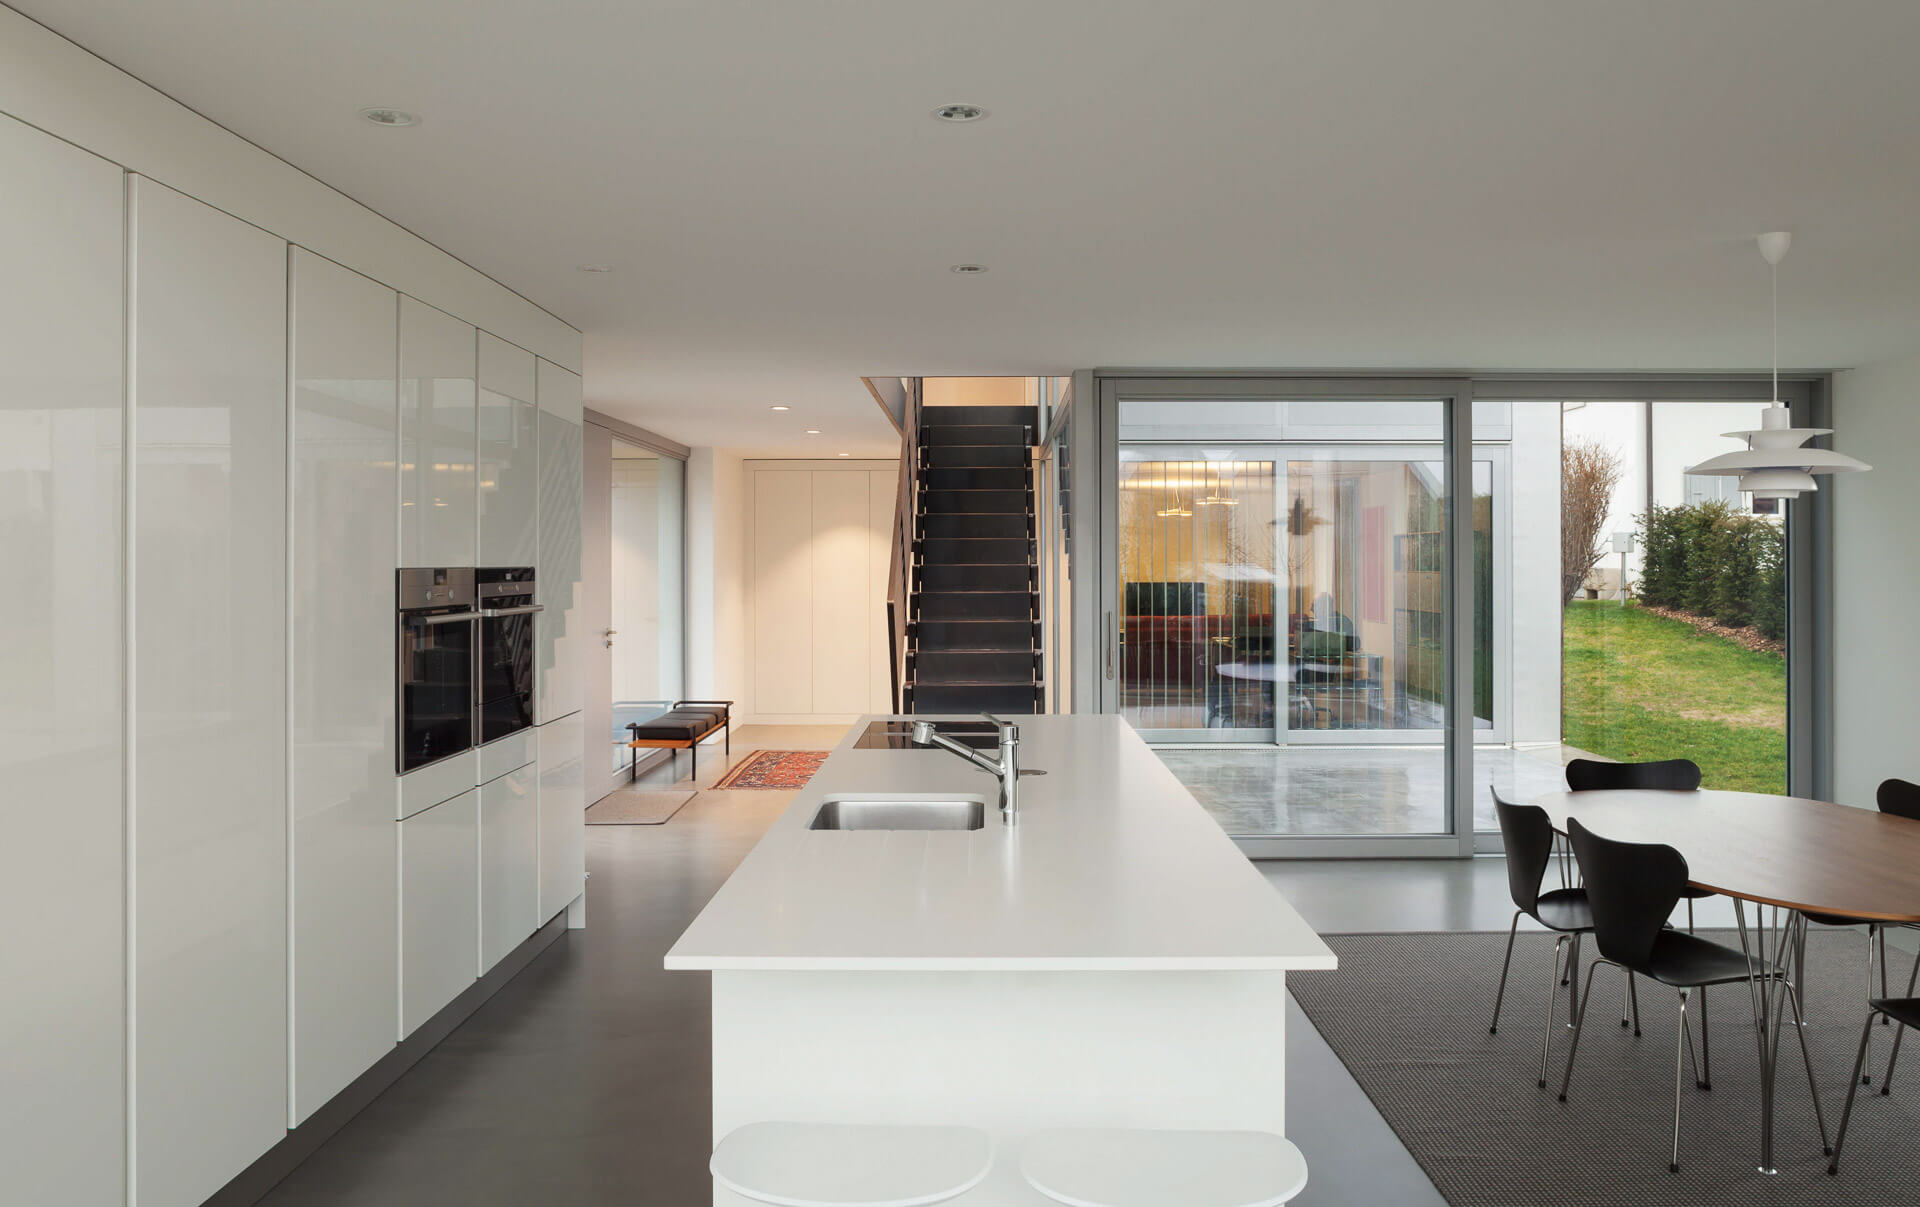 Bespoke white kitchen with island unit in open plan living area of passive house.